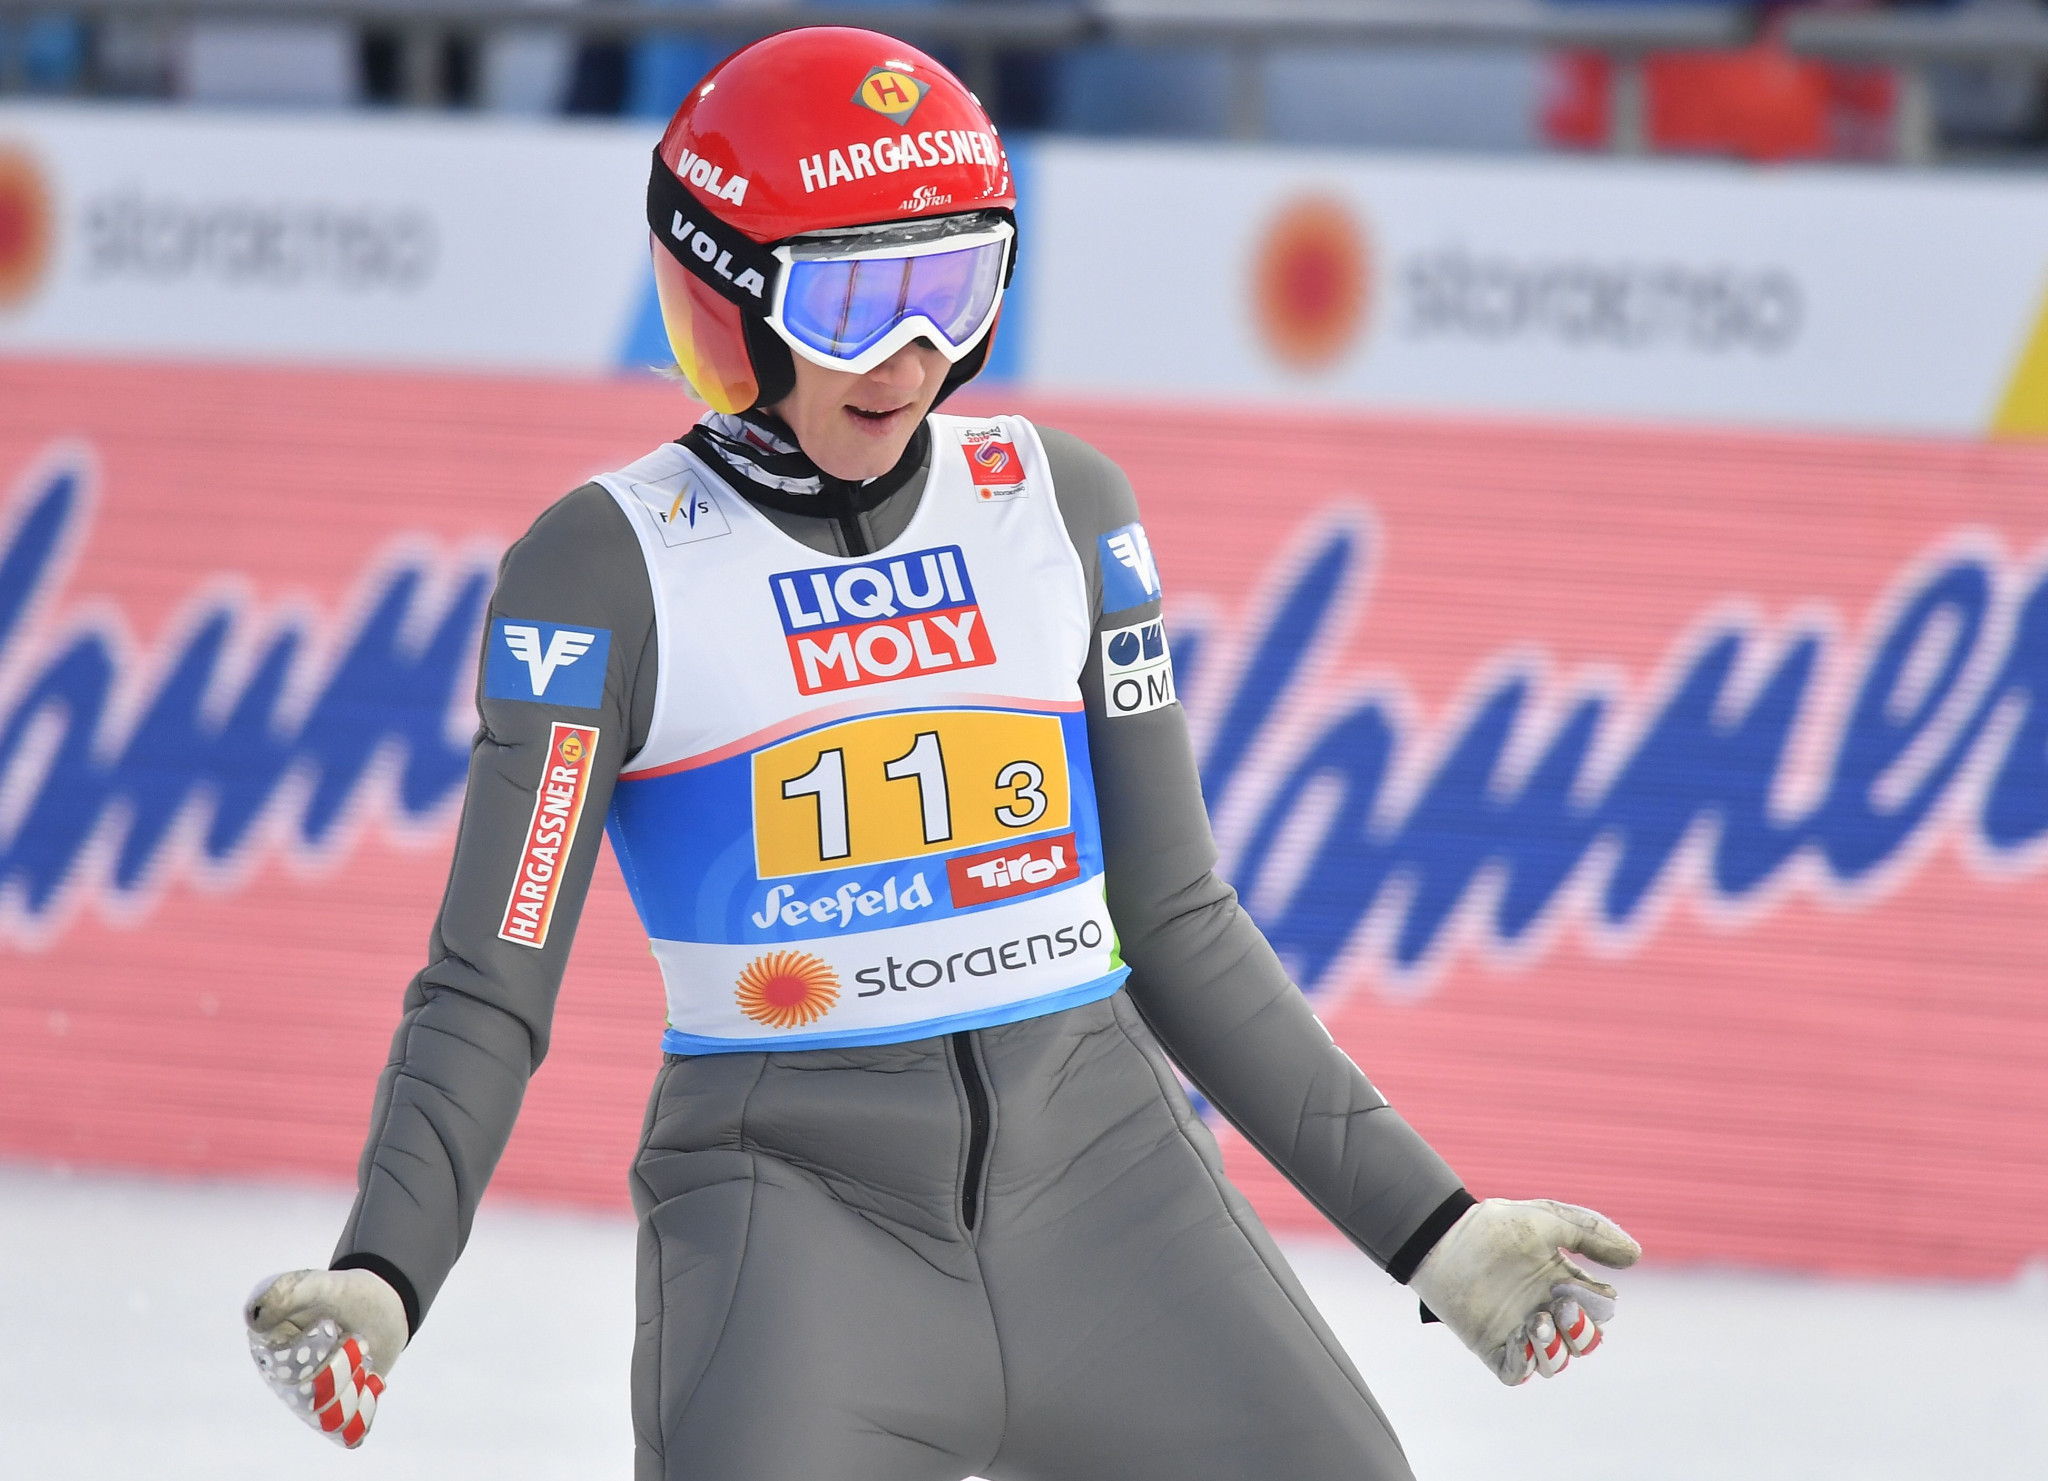 Daniela Iraschko-Stolz won the first event of the inaugural women's Raw Air in Oslo ©Getty Images